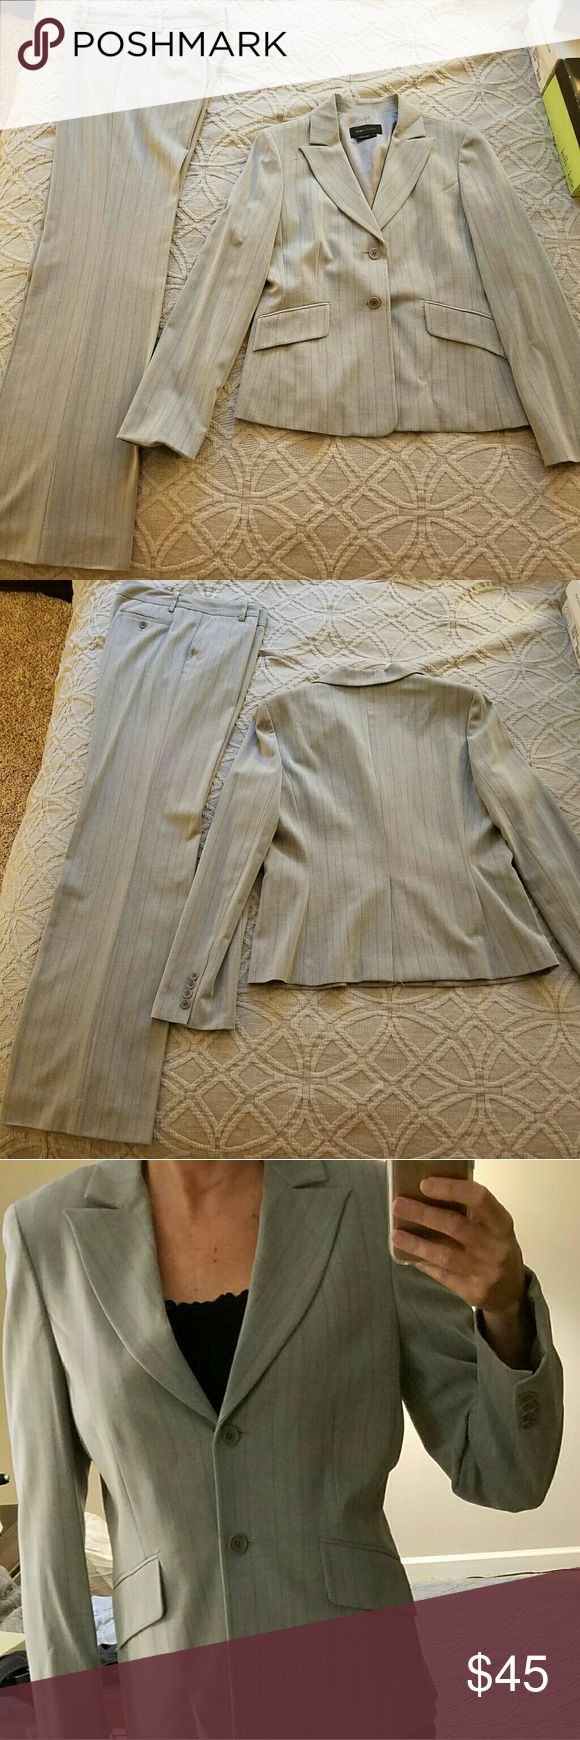 """BCBG MaxAzria 2 piece suit BCBG MaxAzria 2 piece suit. I've lost a bit of weight, so my suits no longer fit me. Pants are size 10. Jacket is a Large. I'm 5'-11"""" and pants are plenty long & can be hemmed.  Both pieces sold together. I will not sell separately. Sorry no trades, I'm trying to purge! Full disclosure, I do not smoke, however I have a hypoallergenic Labradoodle (photobomb) that doesn't shed (not for sale, but if he continues to eat my shoes, he might be! j/k). BCBGMaxAzria Jackets…"""